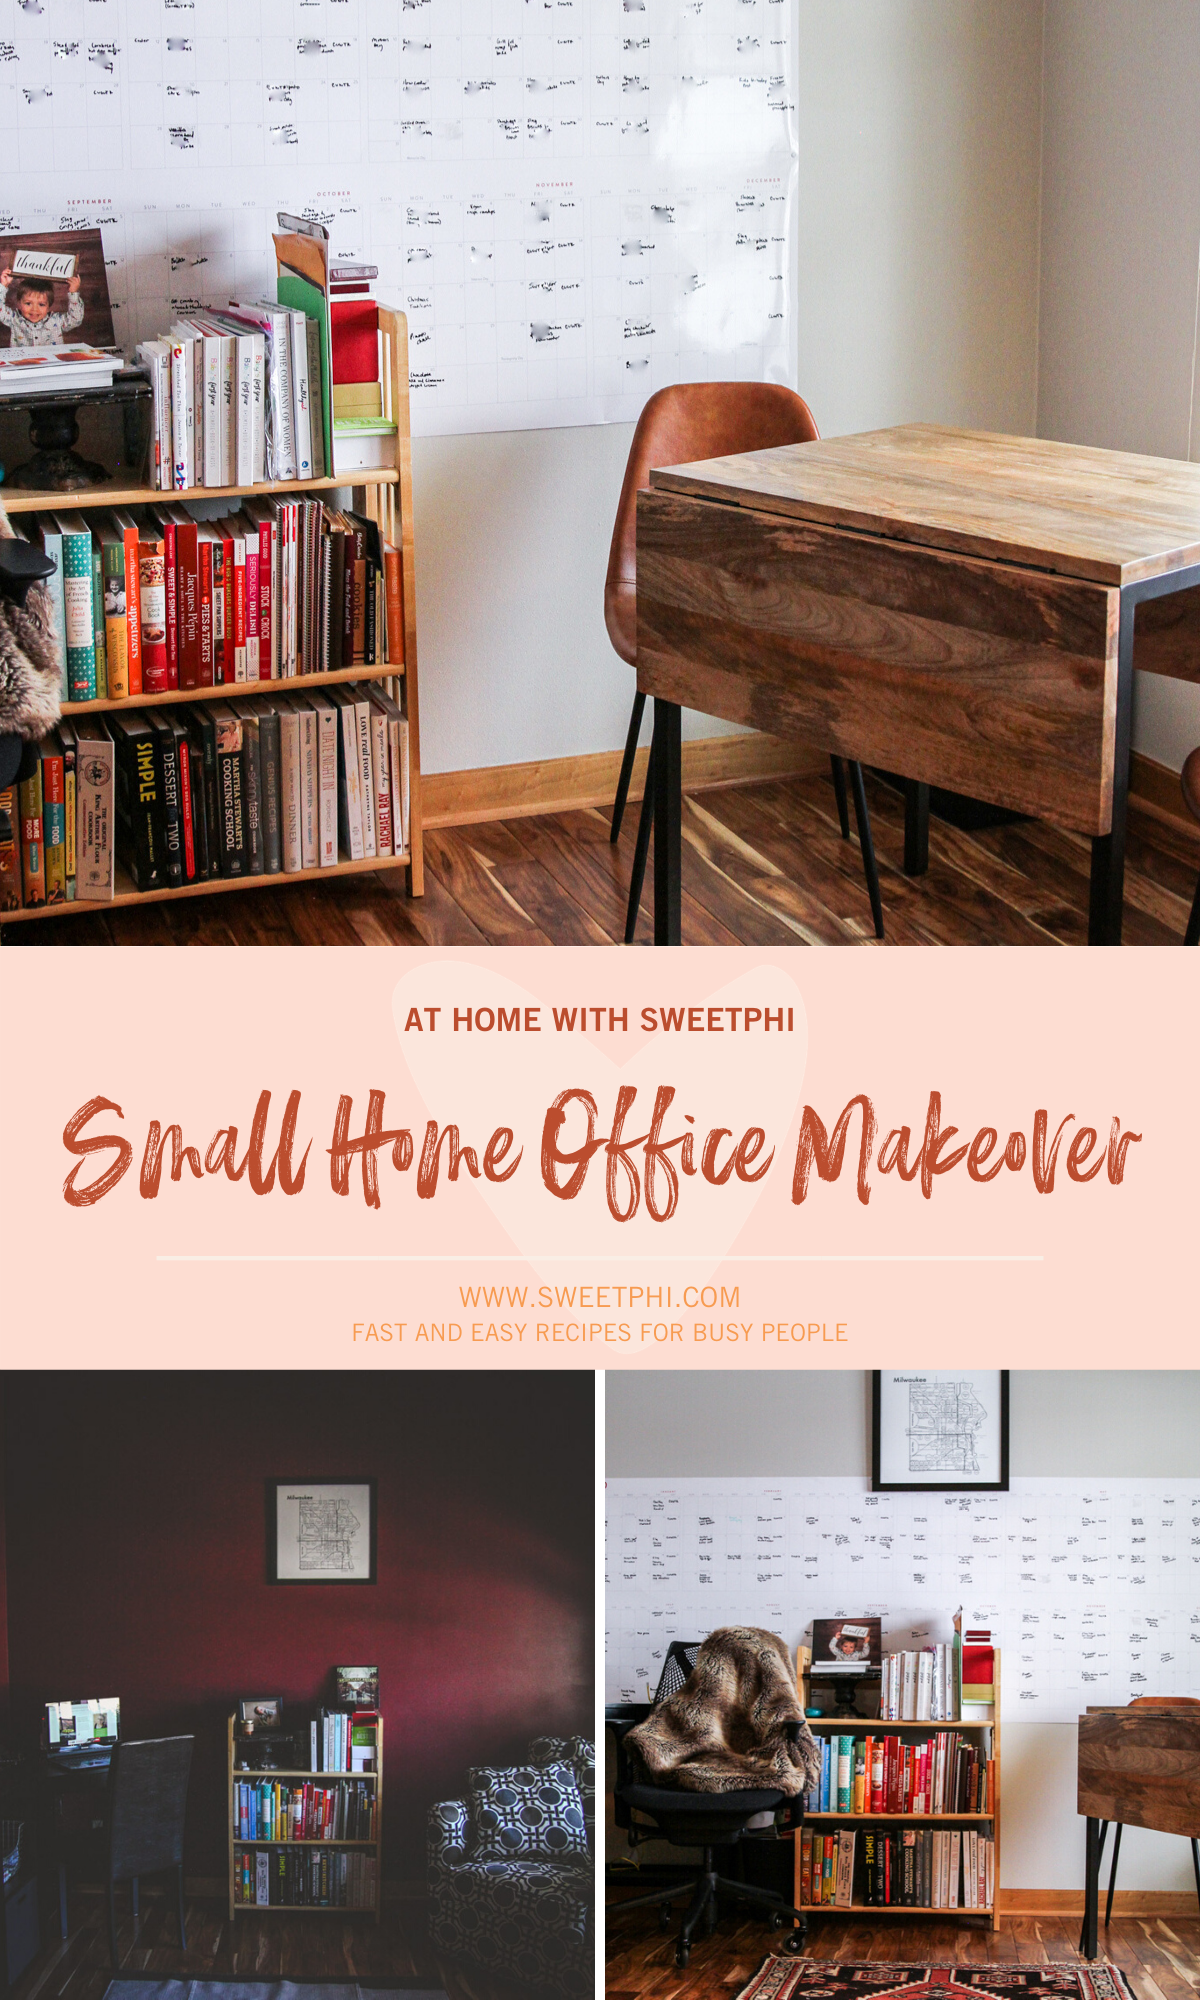 The cutest small home office makeover